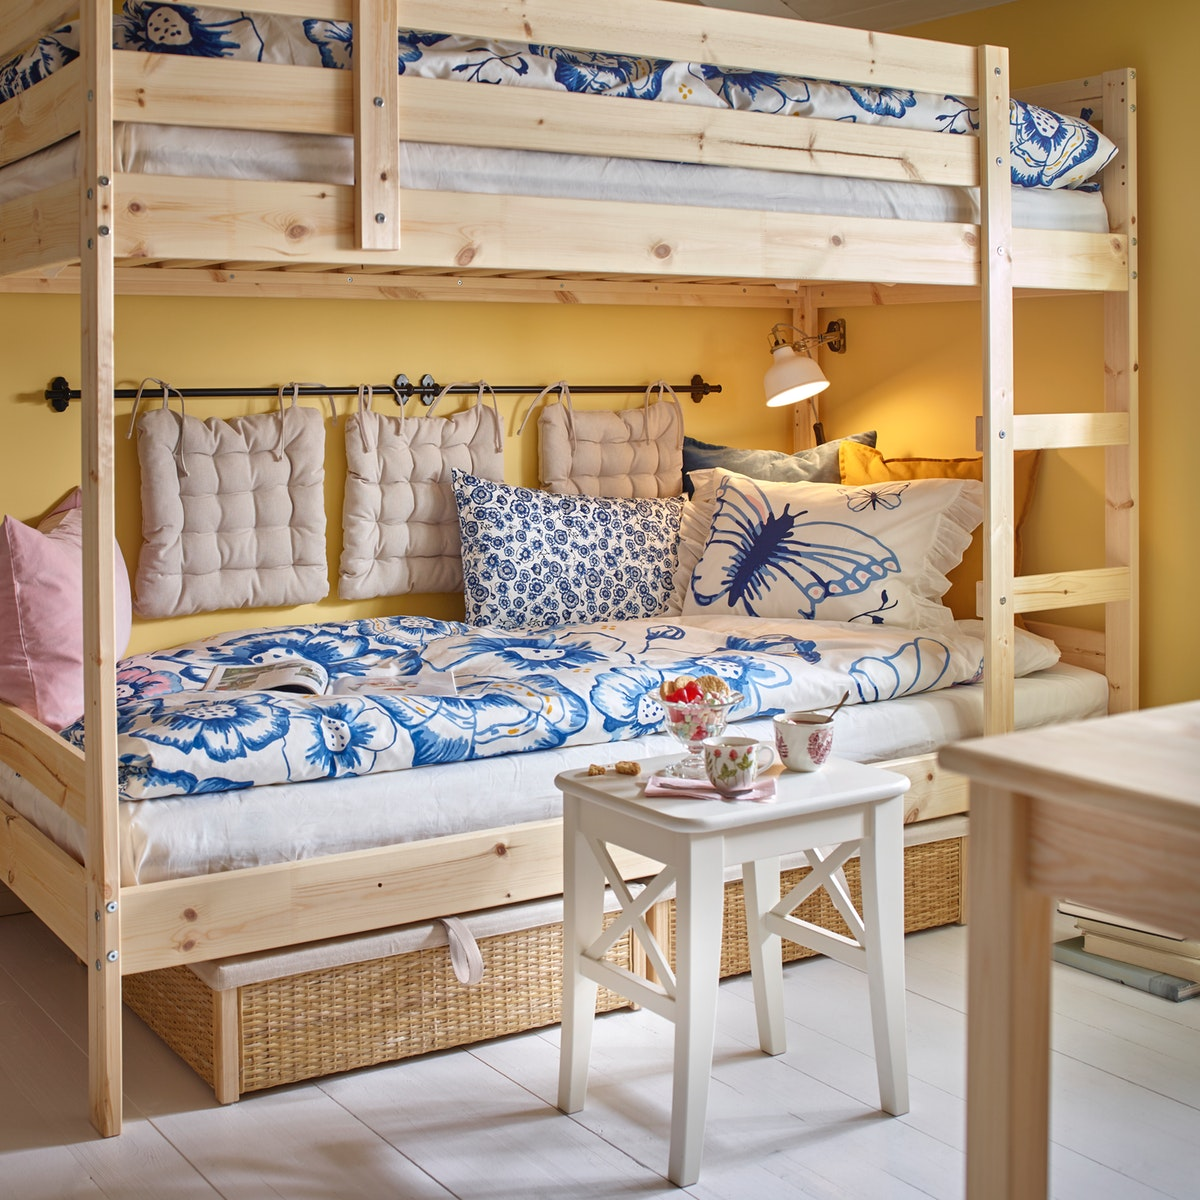 Bunk Bed As A Solution For Small Room Ikea Indonesia